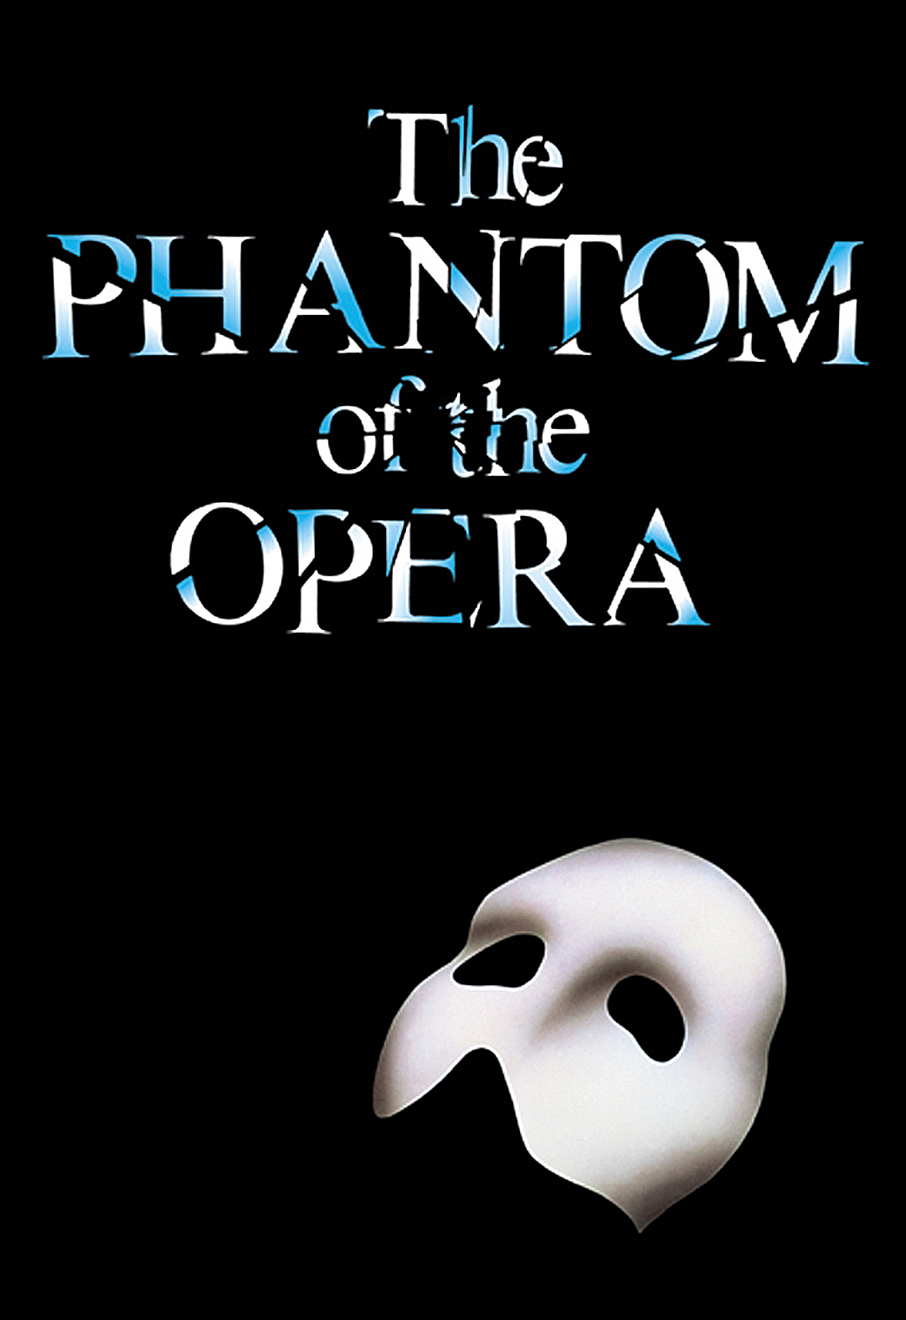 the phantom of the opera 3 essay The phantom of the opera is a horror romance about a deformed man who sinisterly plots against the woman he loves it was originally published in 1911 and has been compared to beauty and the beast.